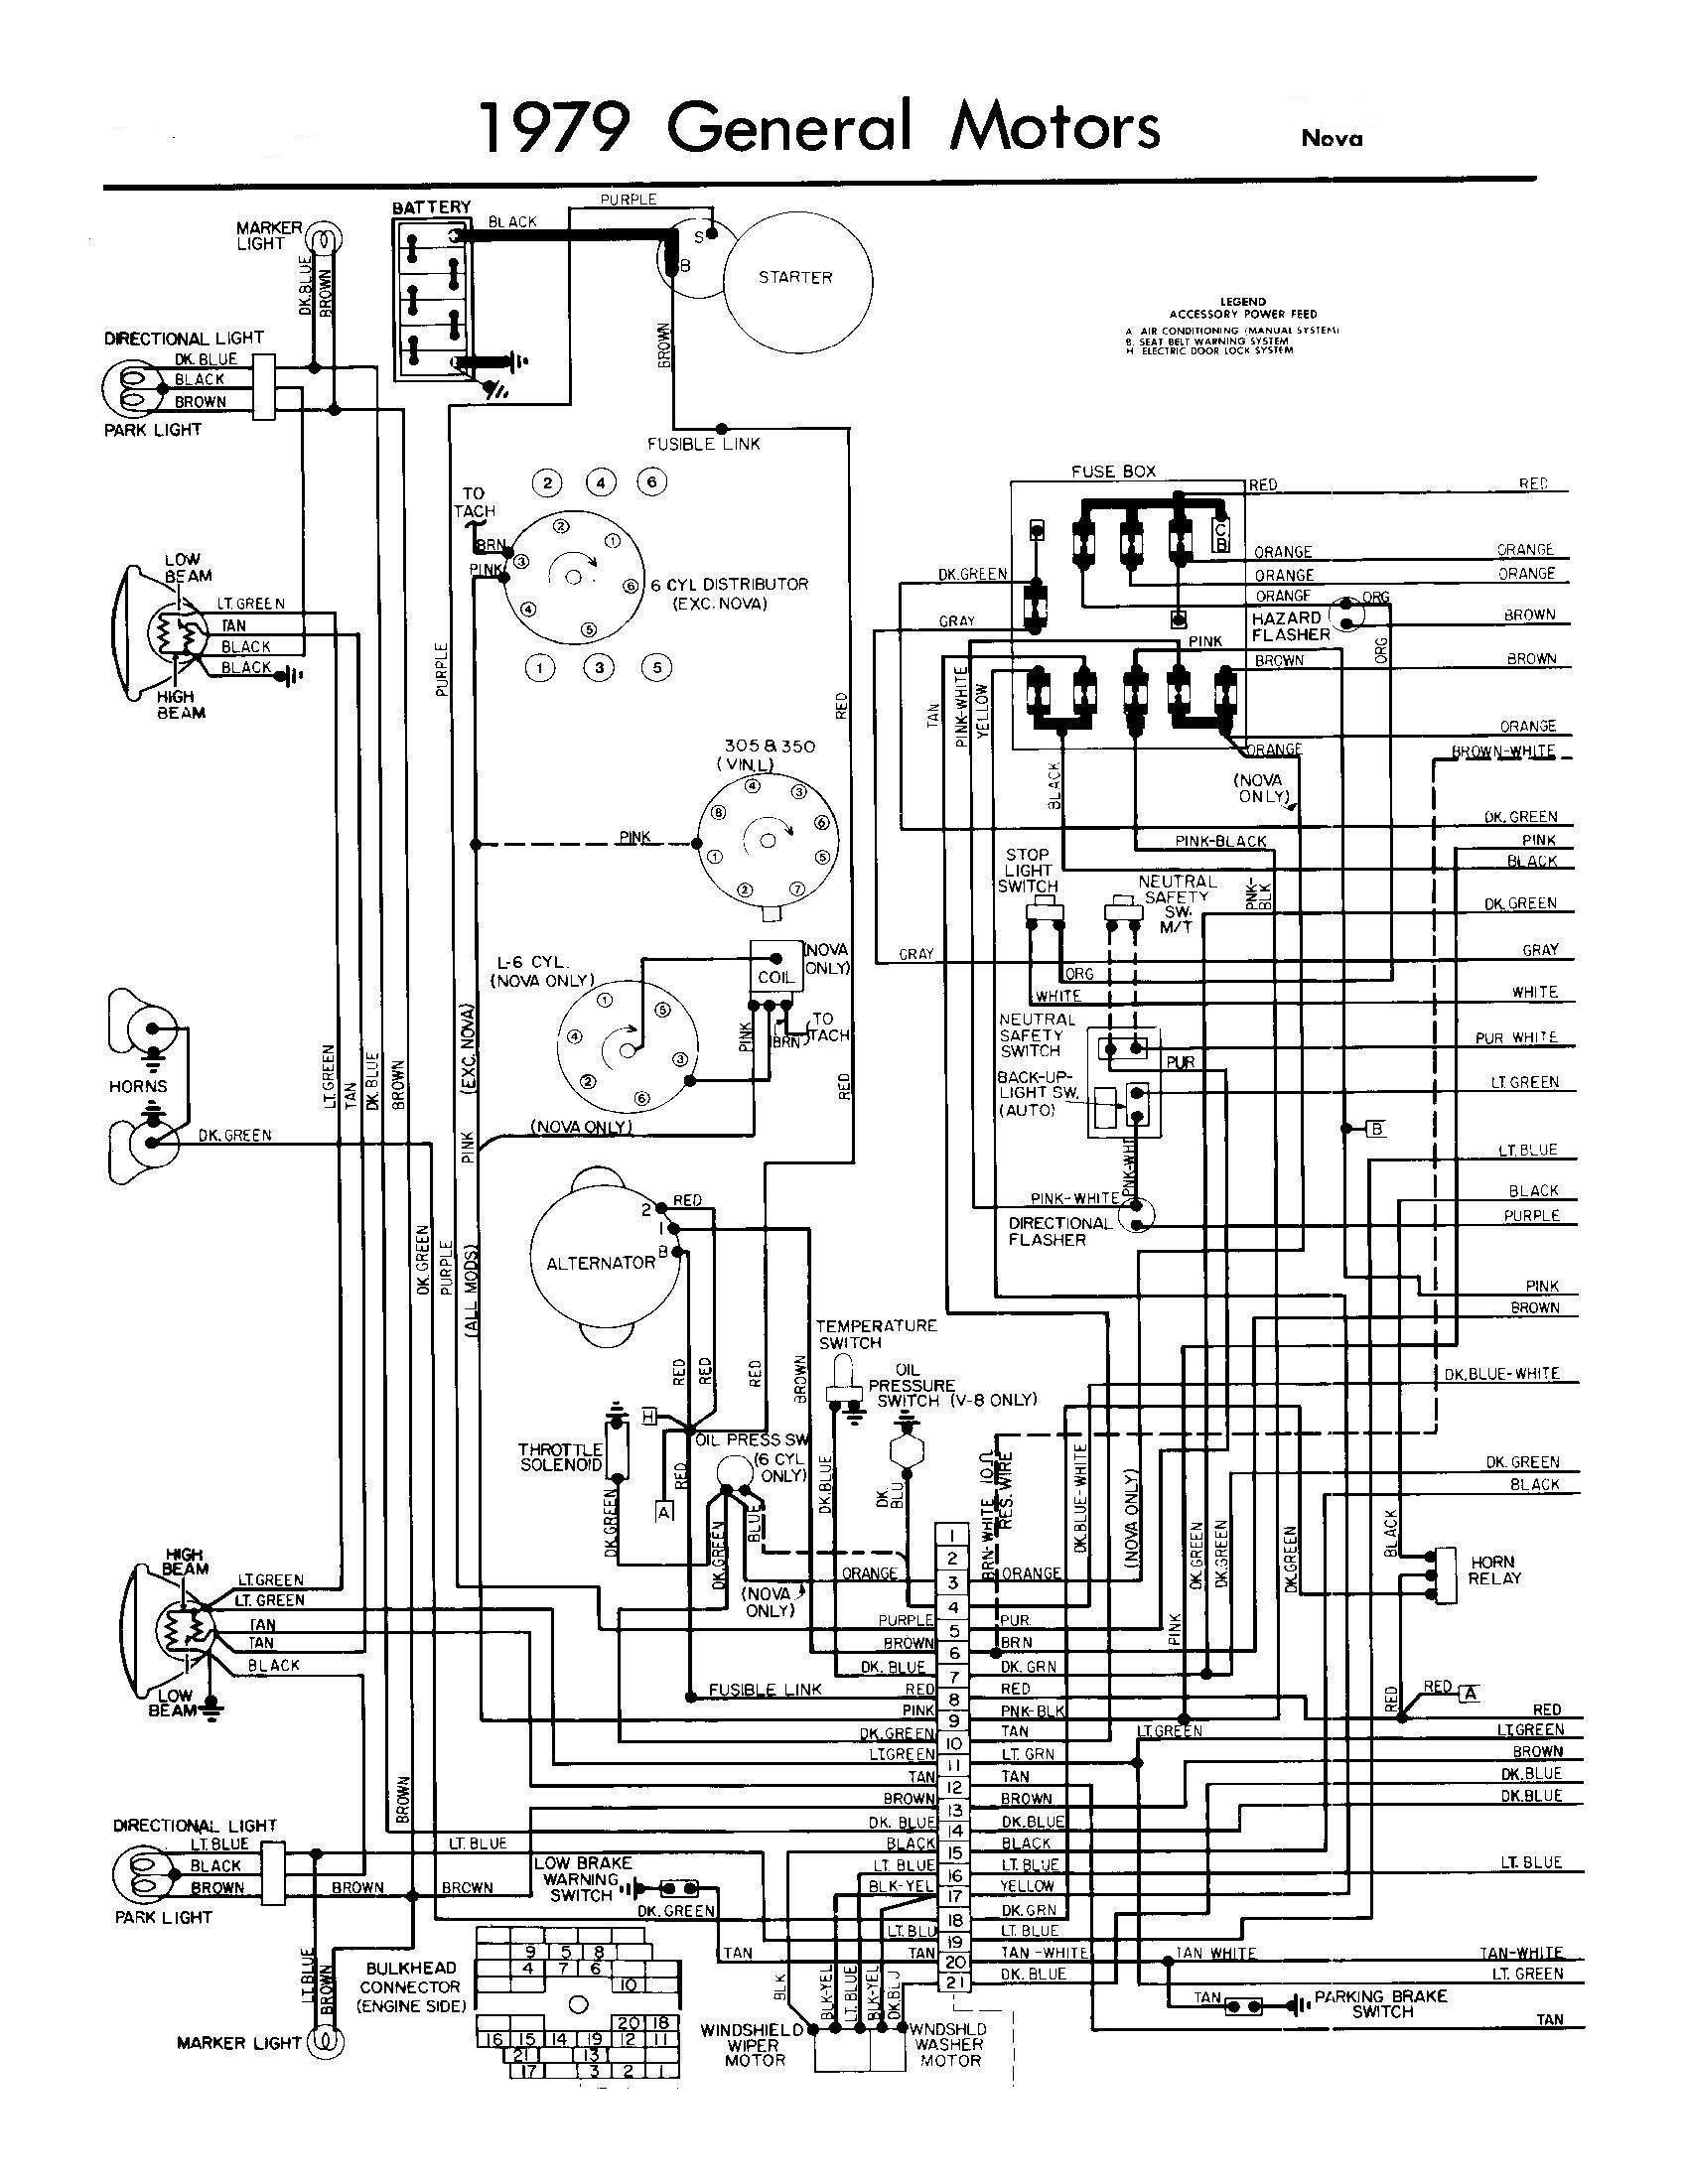 New Audi A4 B5 Wiring Diagram Pdf #diagramsample #